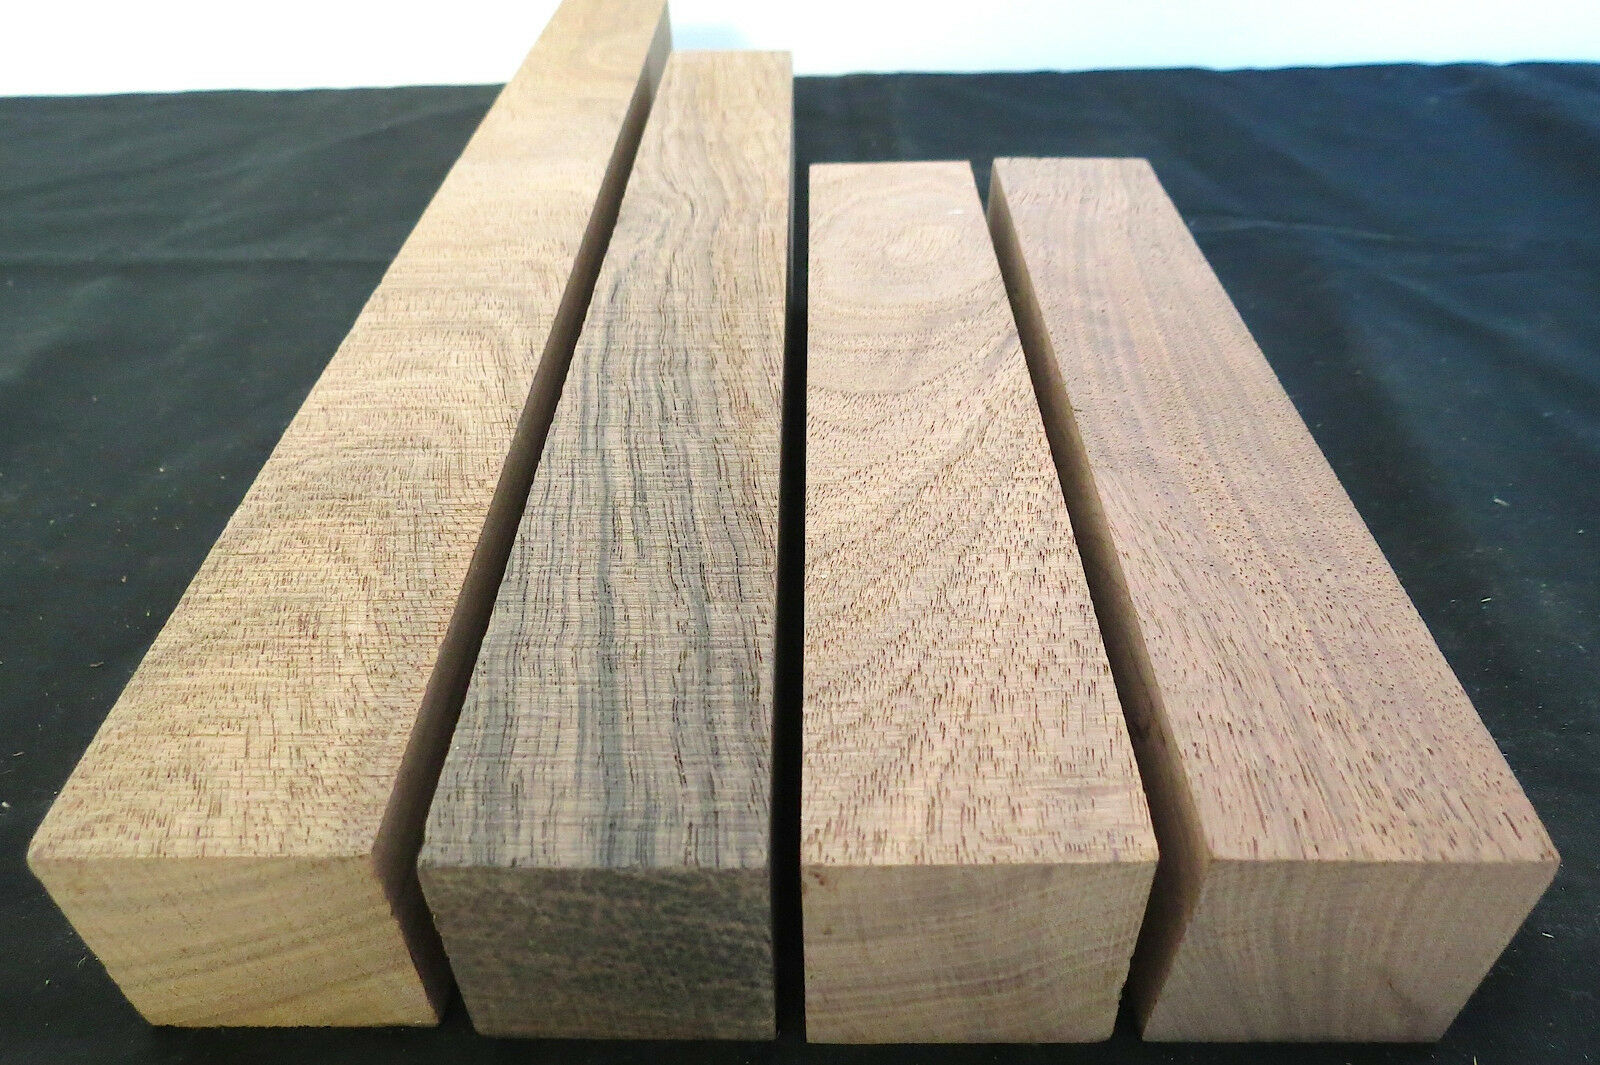 FOUR turning squares lathe spindle blanks duck game turkey trumphet box call, KD